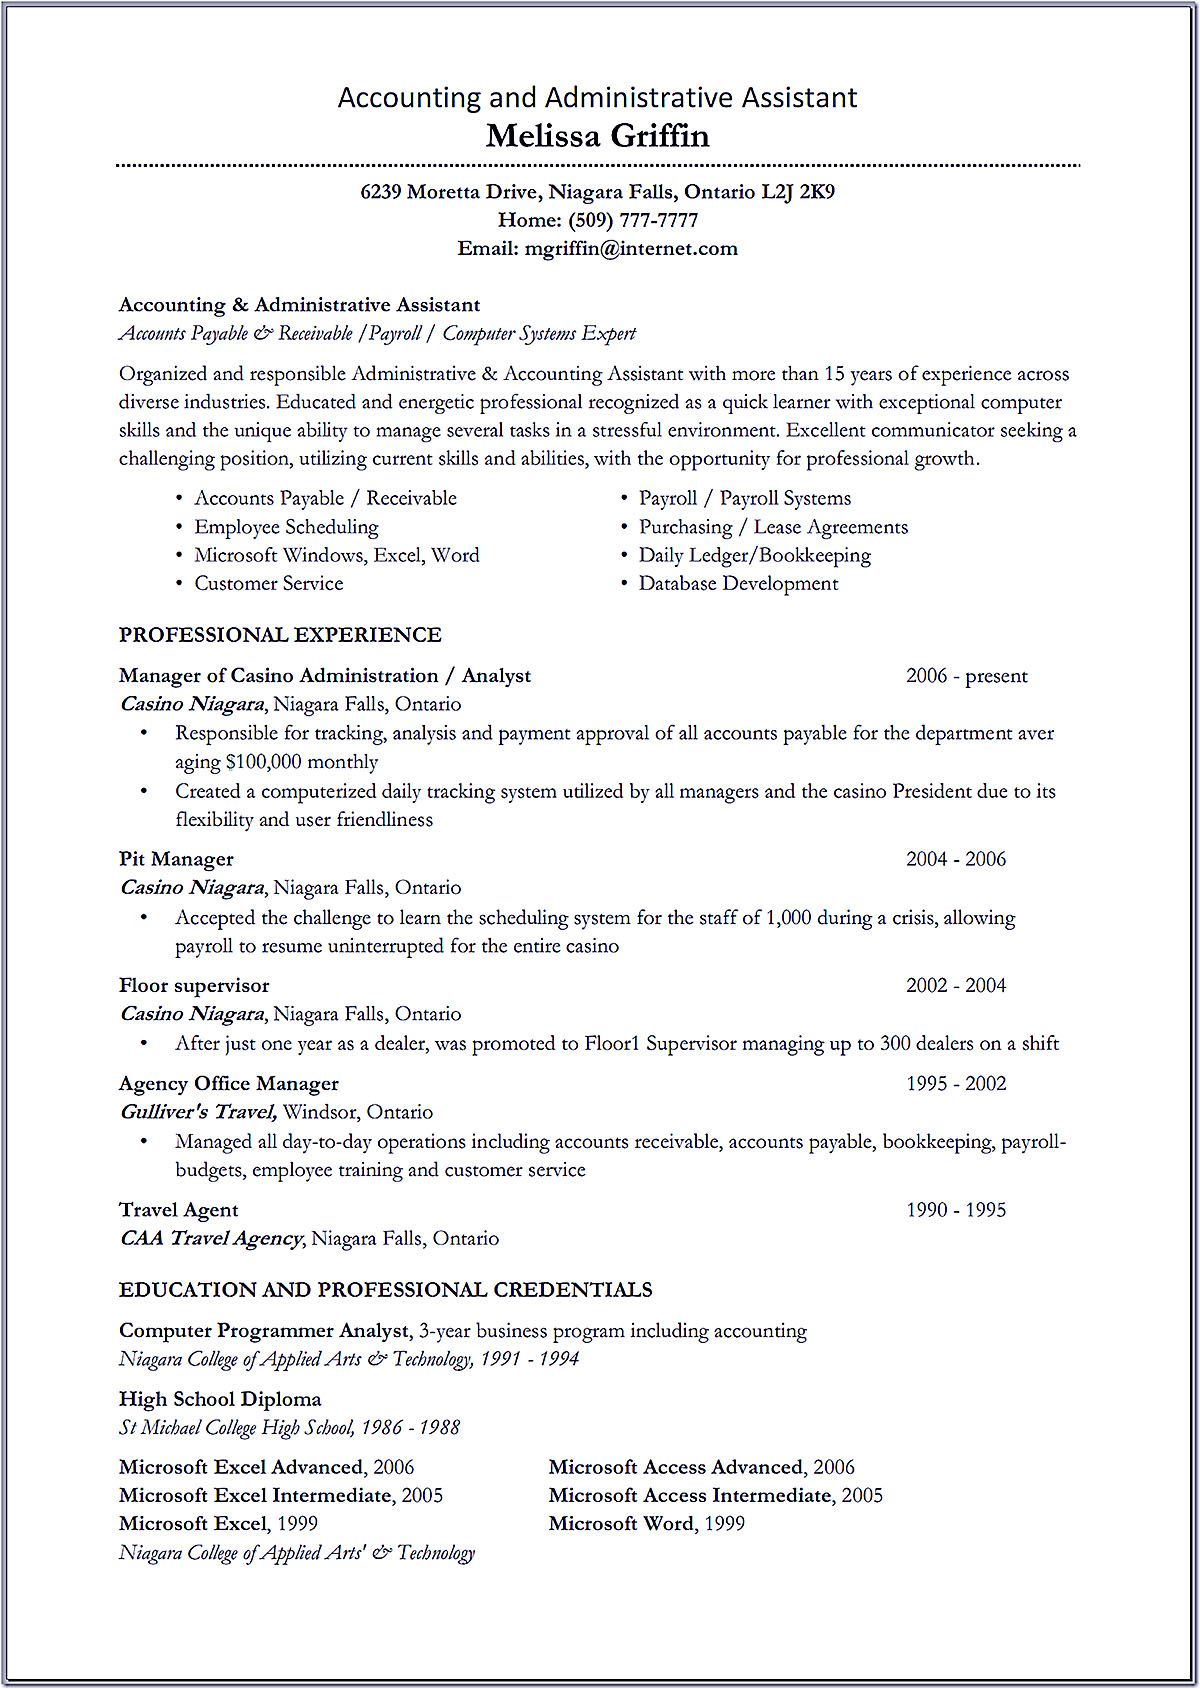 whether or not accounting assistant resume can be